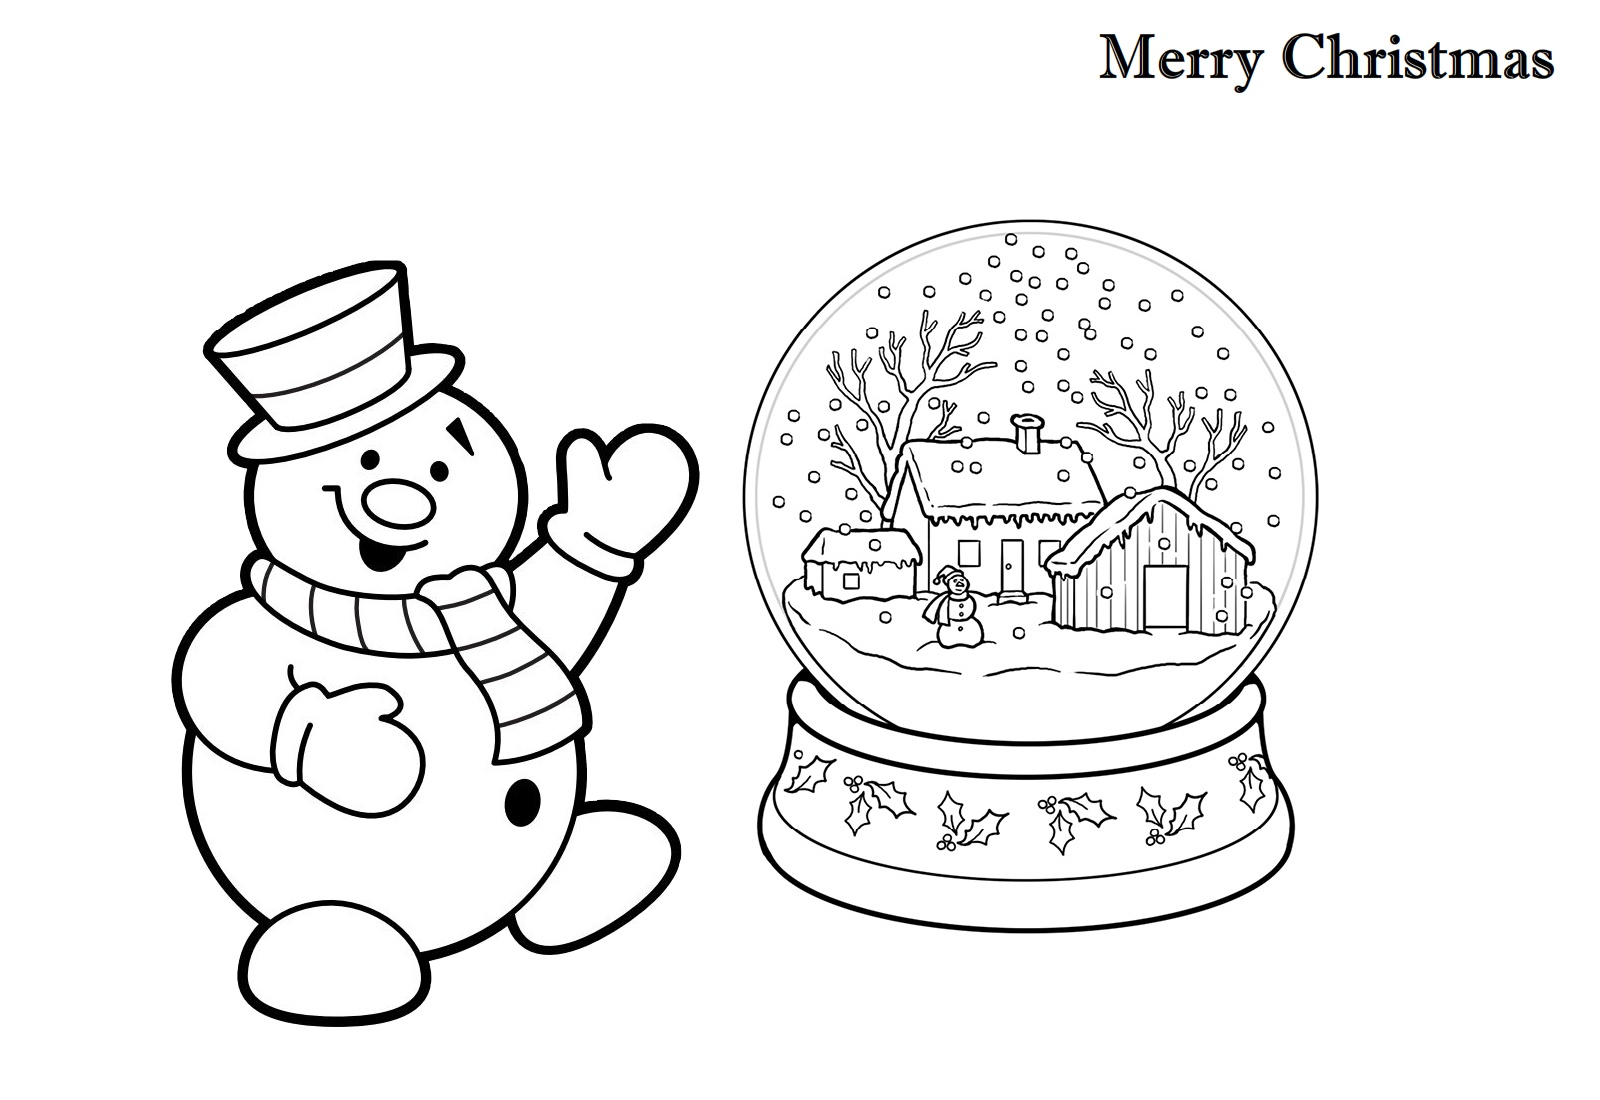 Faerlmarie Coloring Pages 35 Christmas Snow Globe